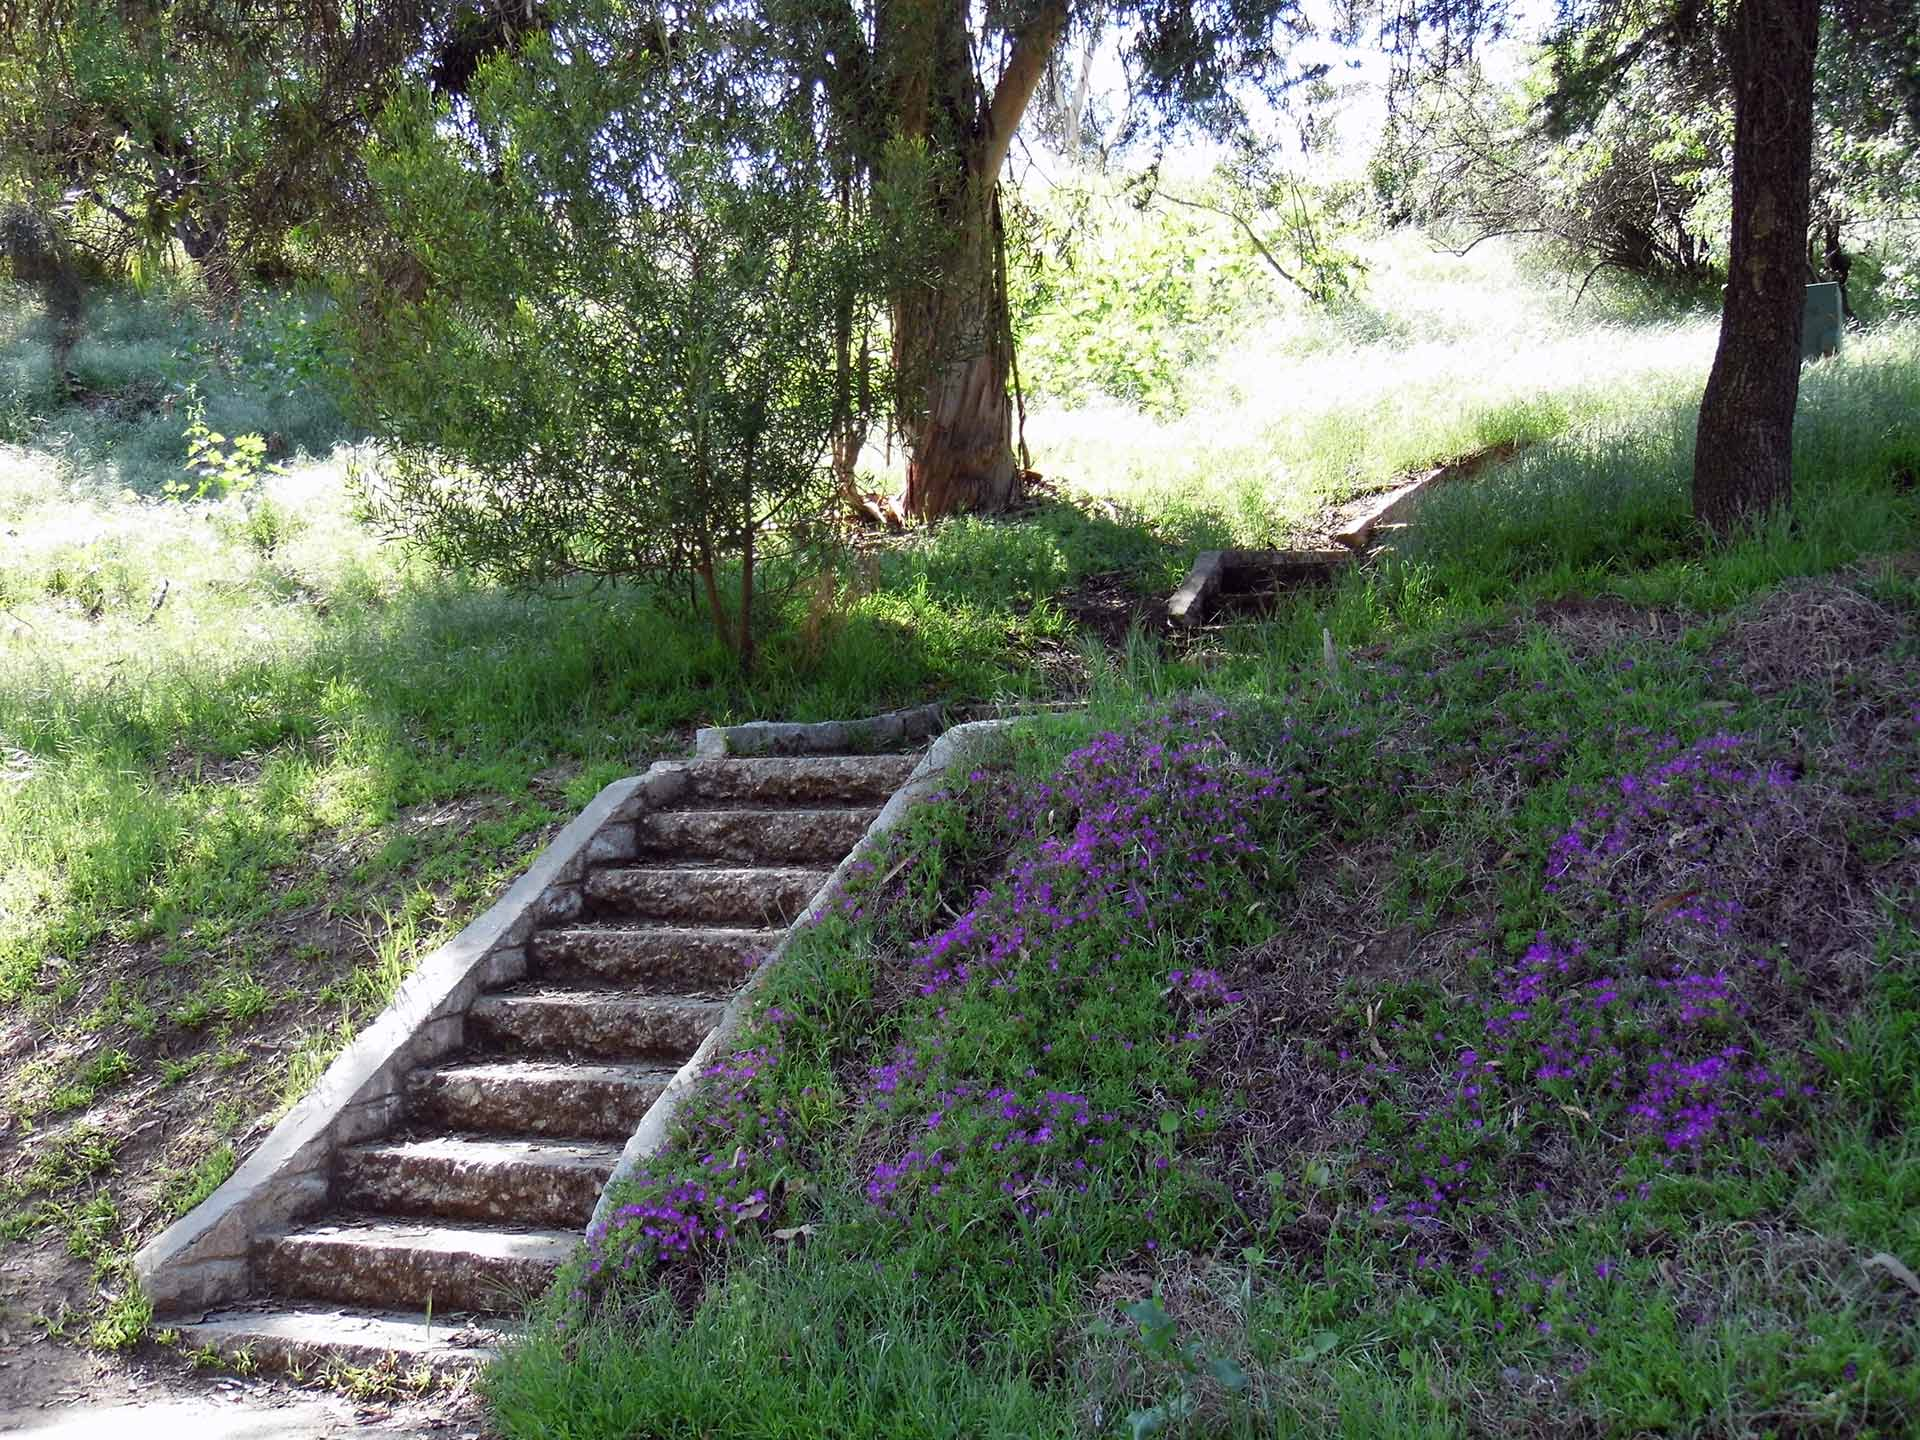 A set of stairs surrounded by wildflowers at Montecillo de Leo Politi Park. | Sandi Hemmerlein